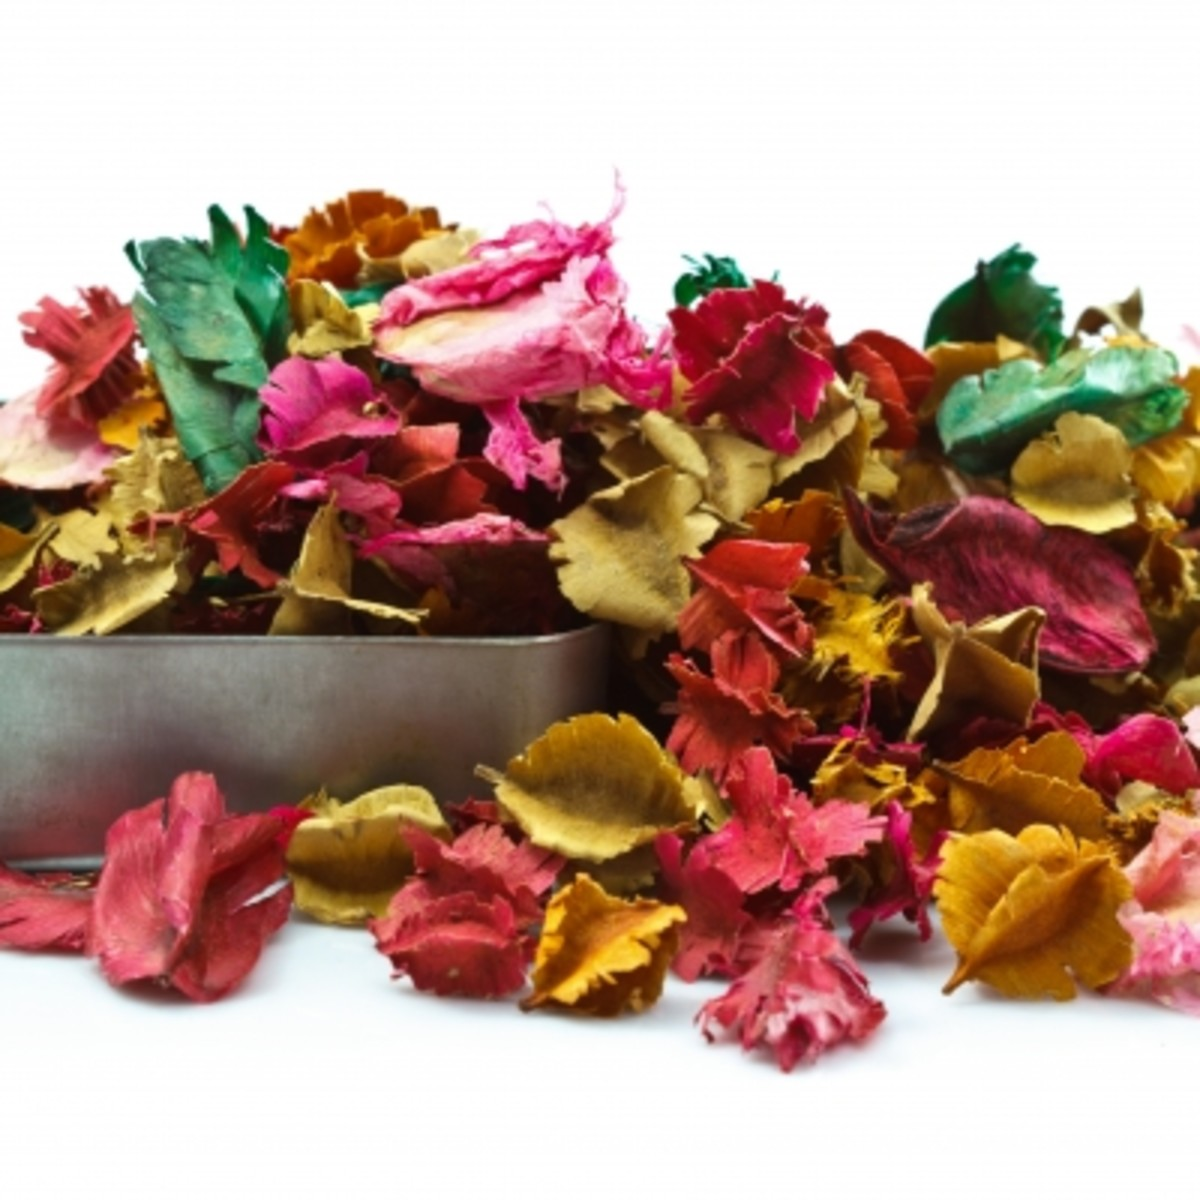 How to Make Sweet Smelling Herbal Potpourri